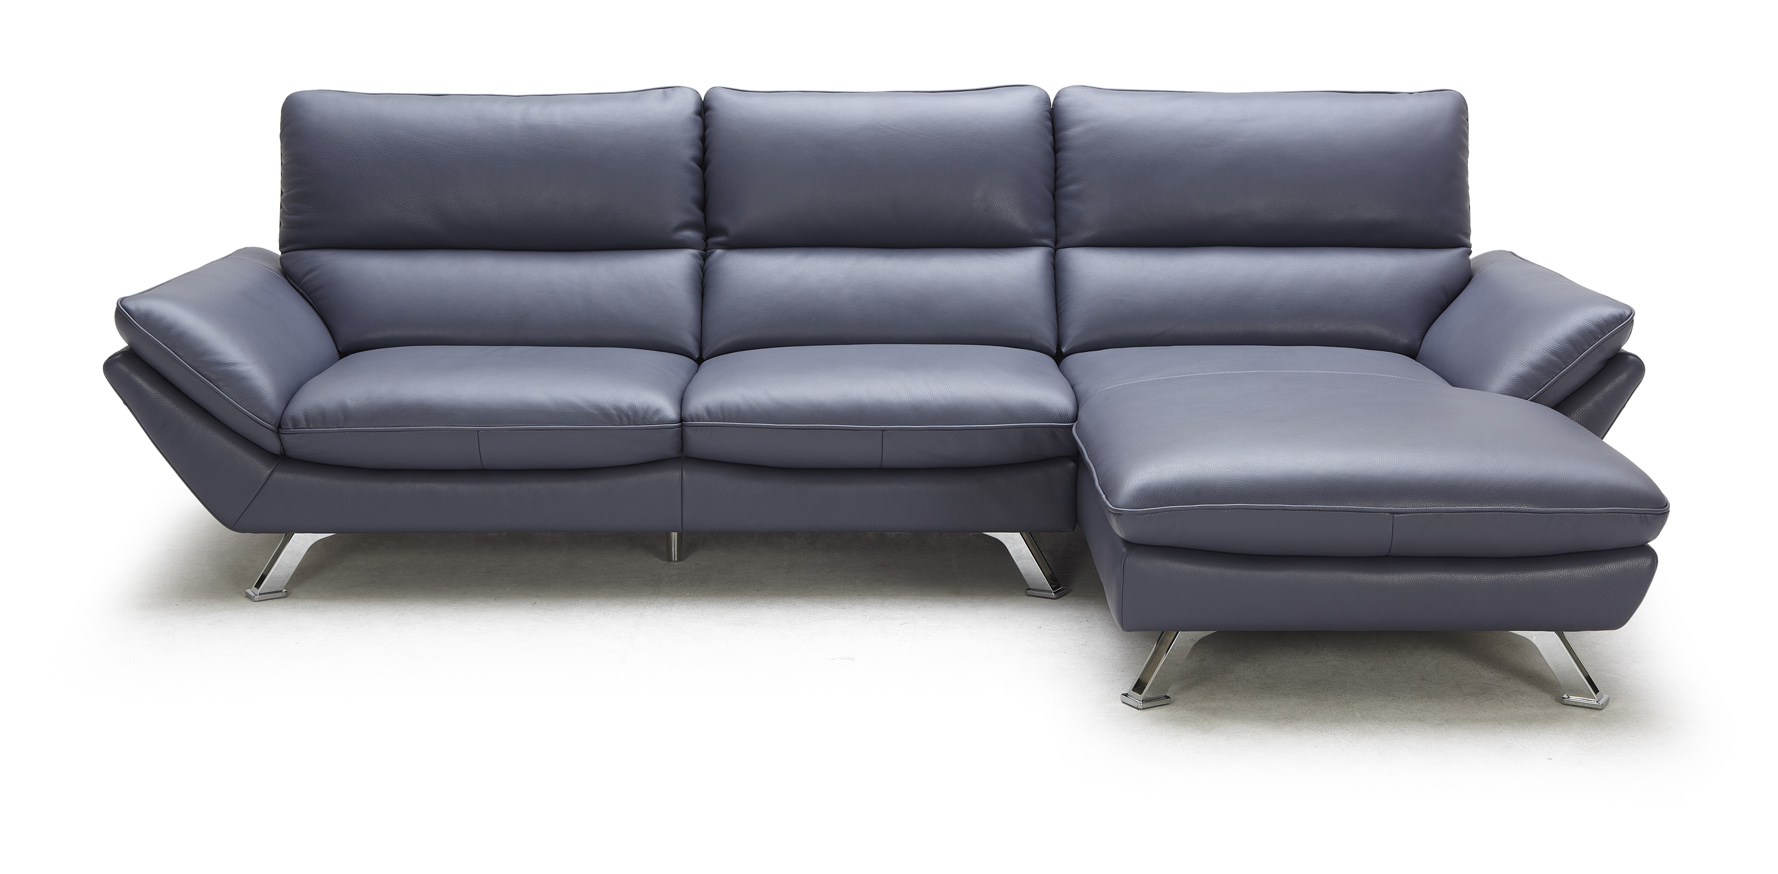 Blue leather sectional sofa hereo sofa for Andersen leather chaise sectional